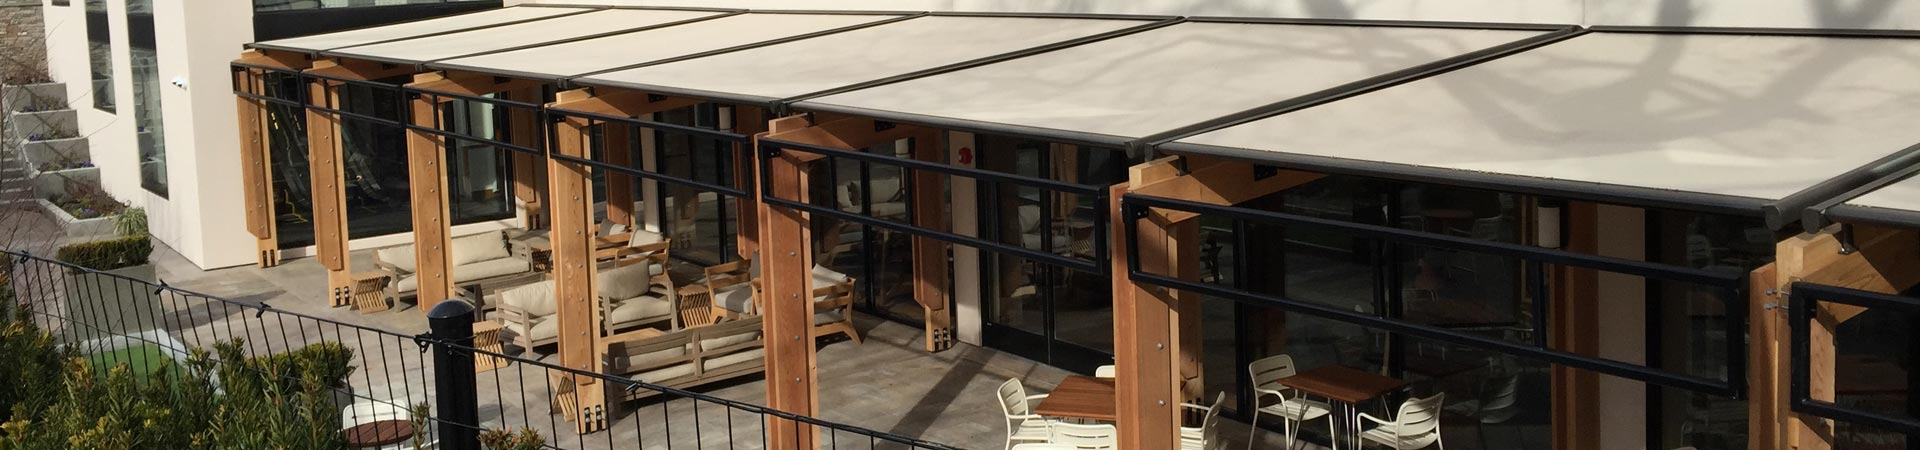 Commercial Awning Slider